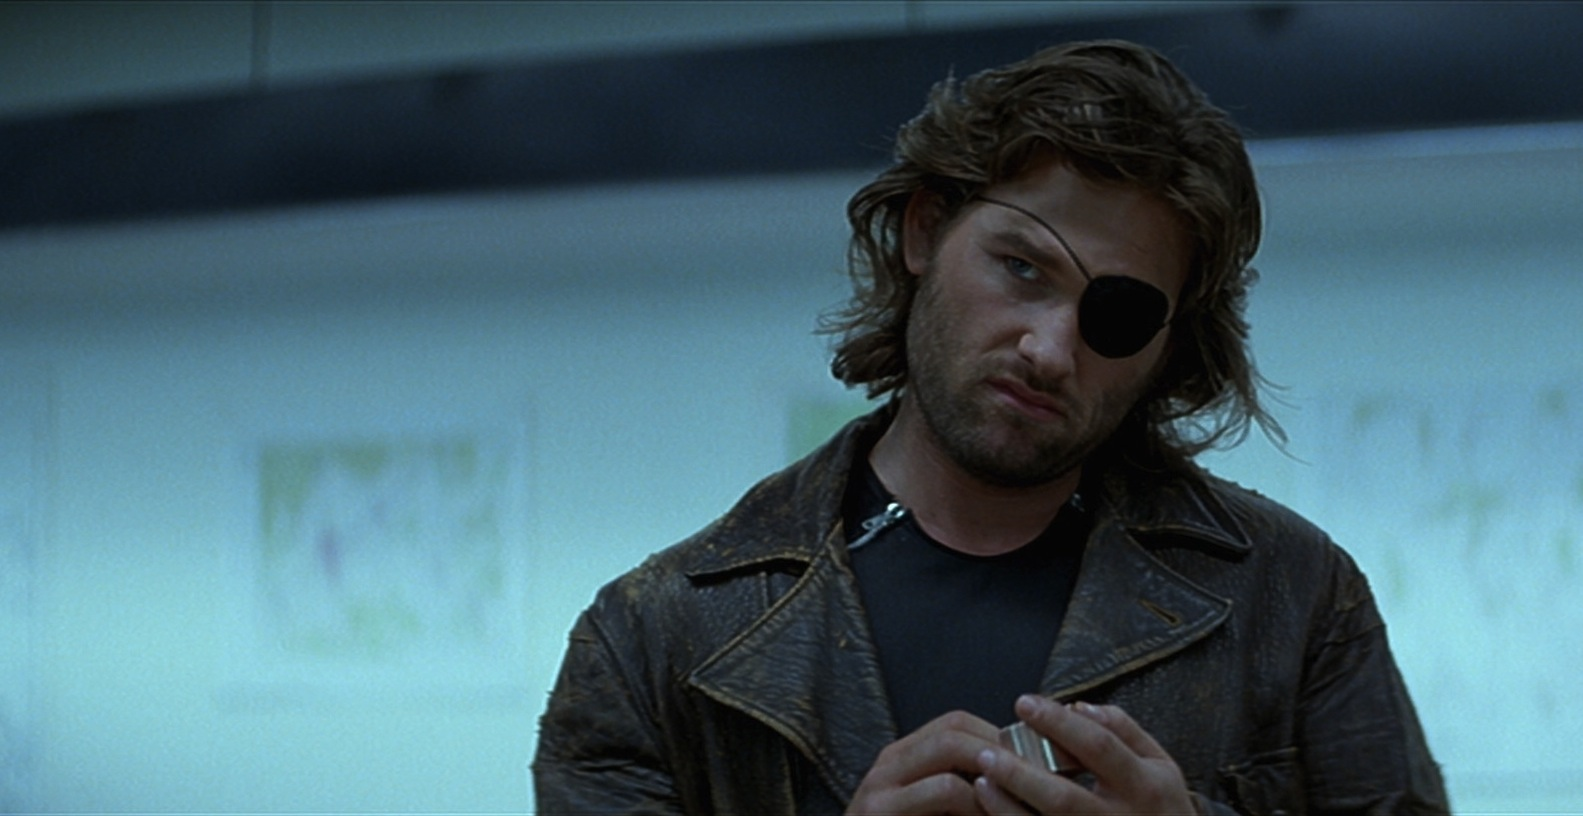 Akiratsu Snake Plisskin Porno you know their names: if more movies were titled after their